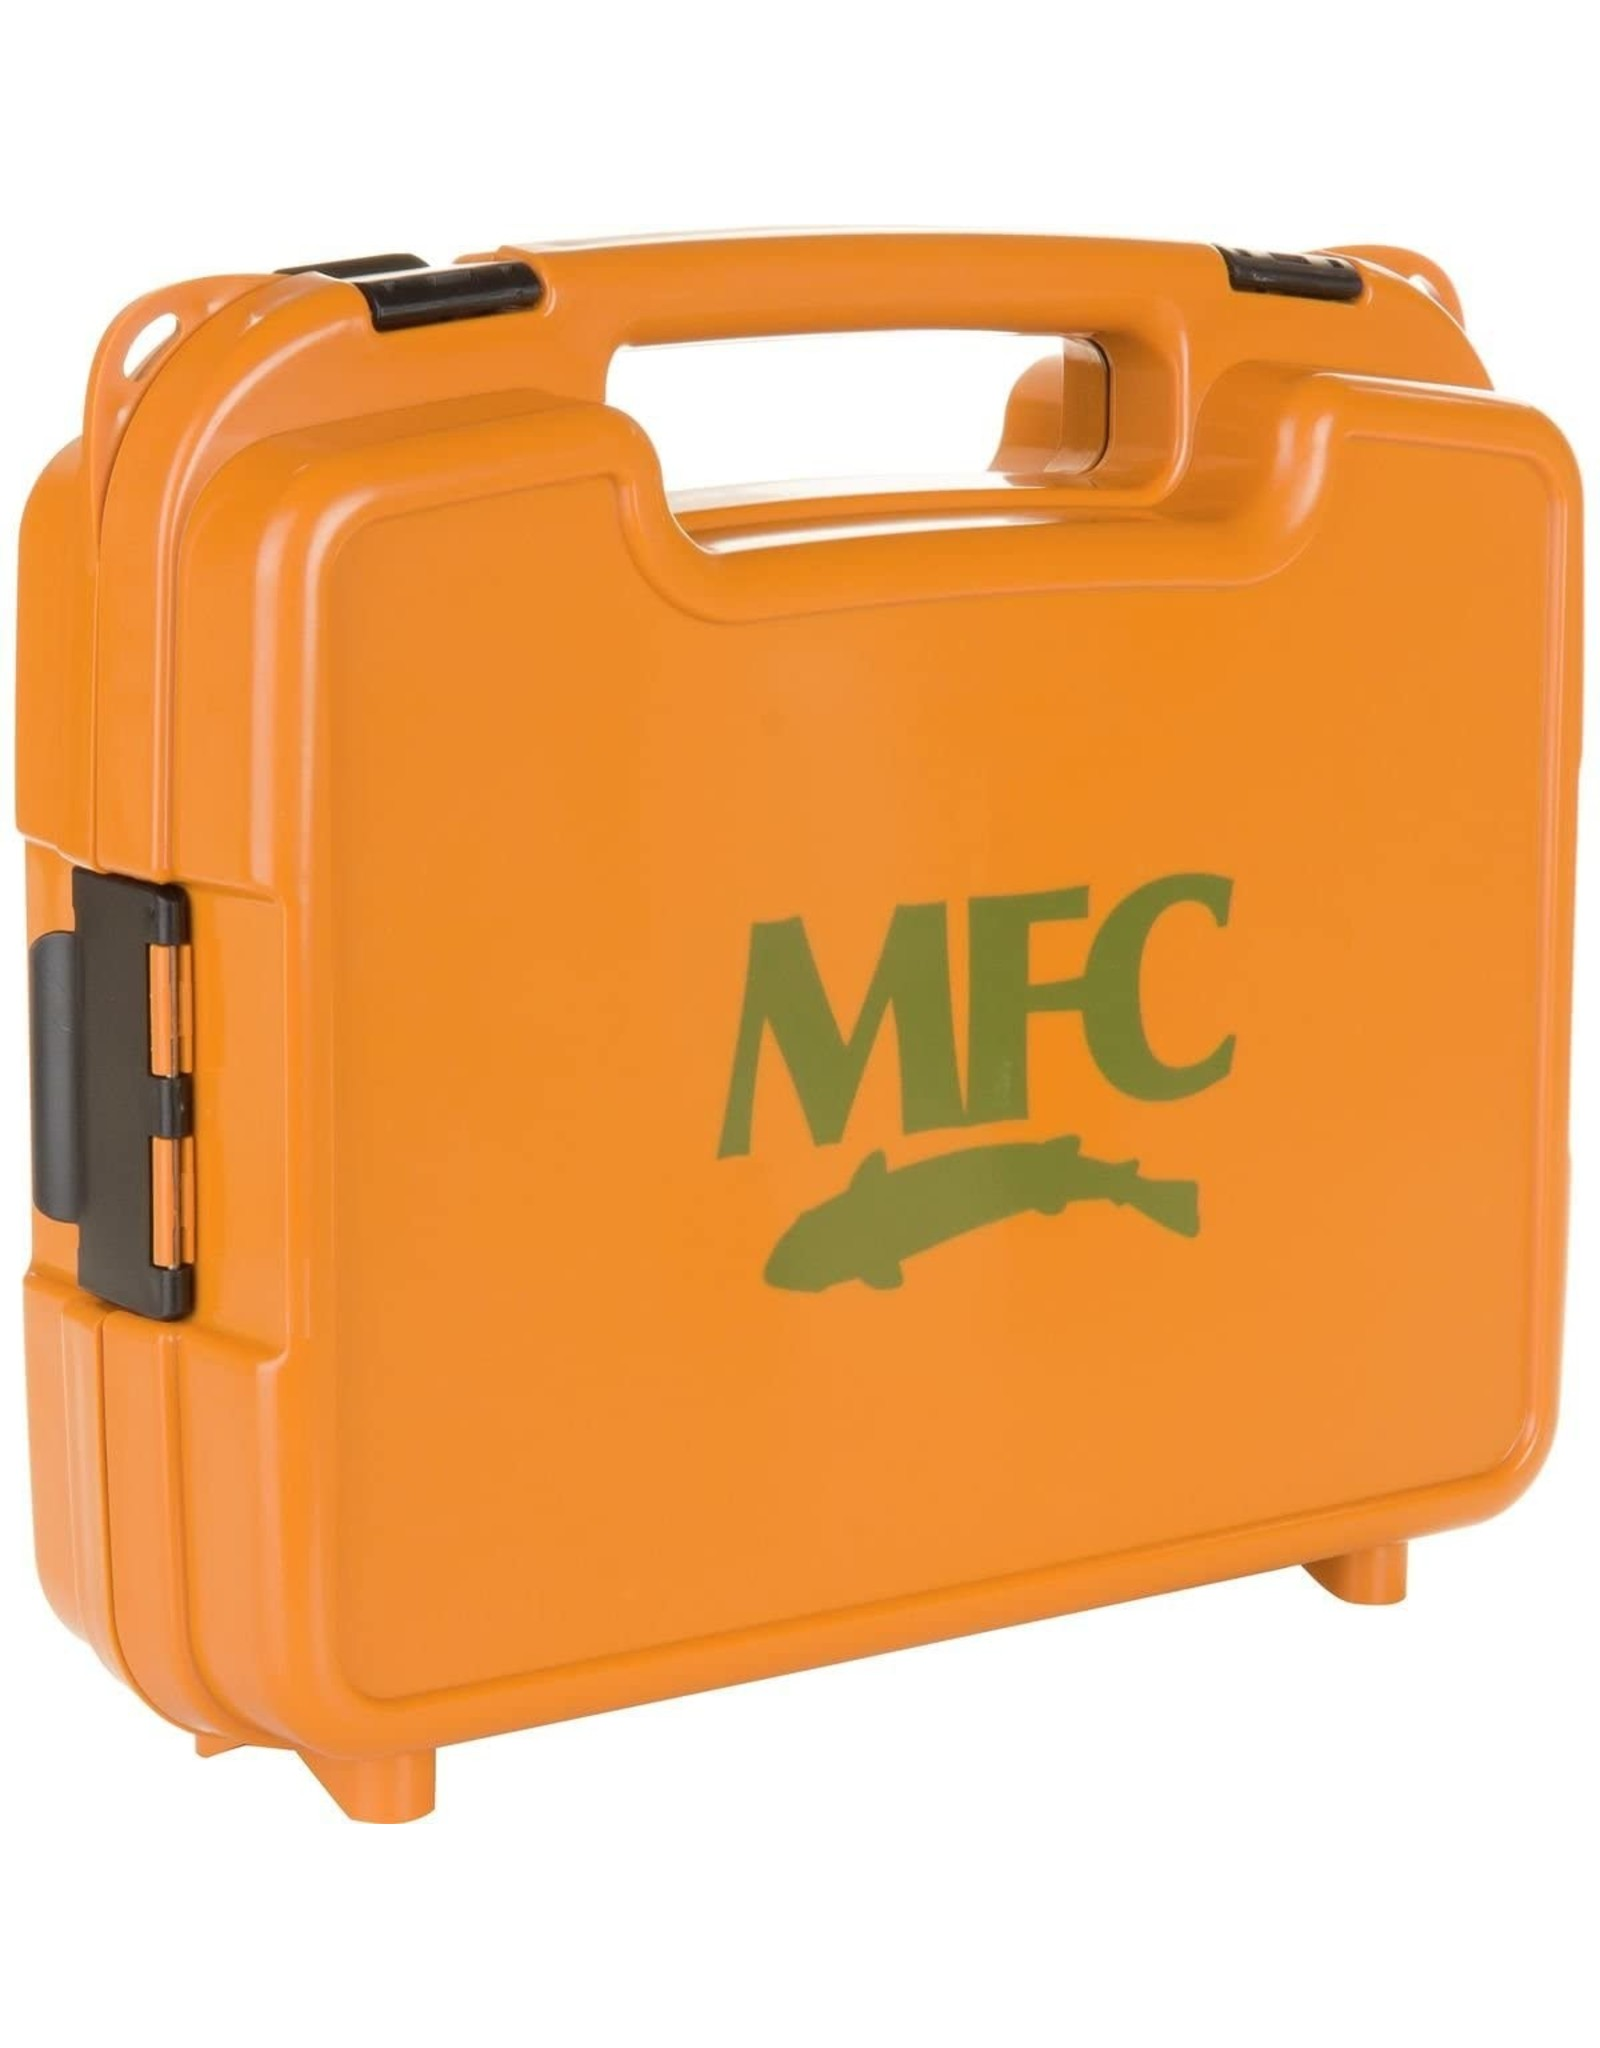 MFC MFC - Boat Fly Box